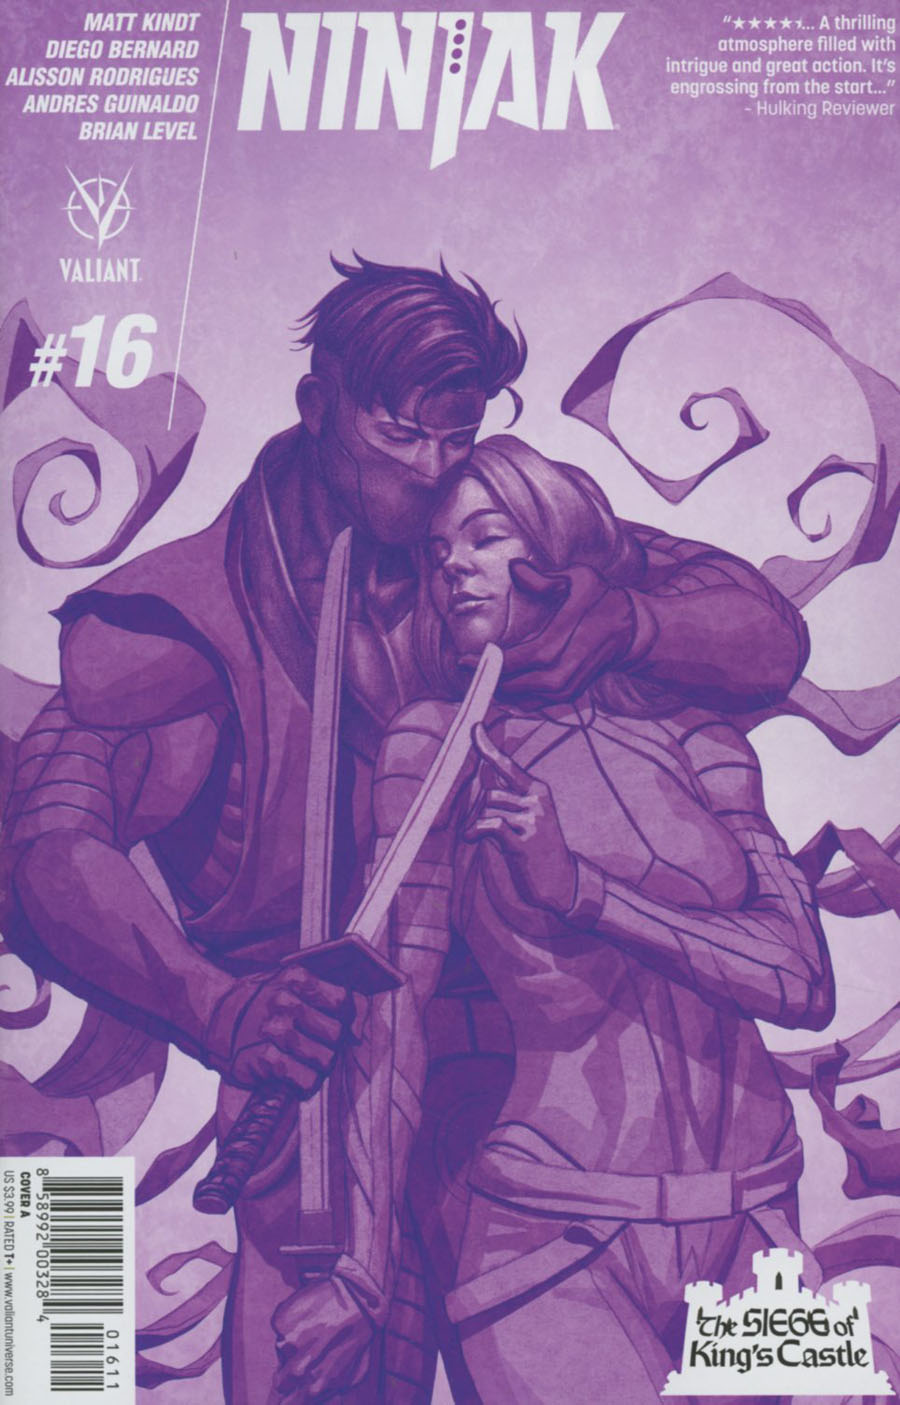 Ninjak Vol 3 #16 Cover A Regular Mike Choi Cover